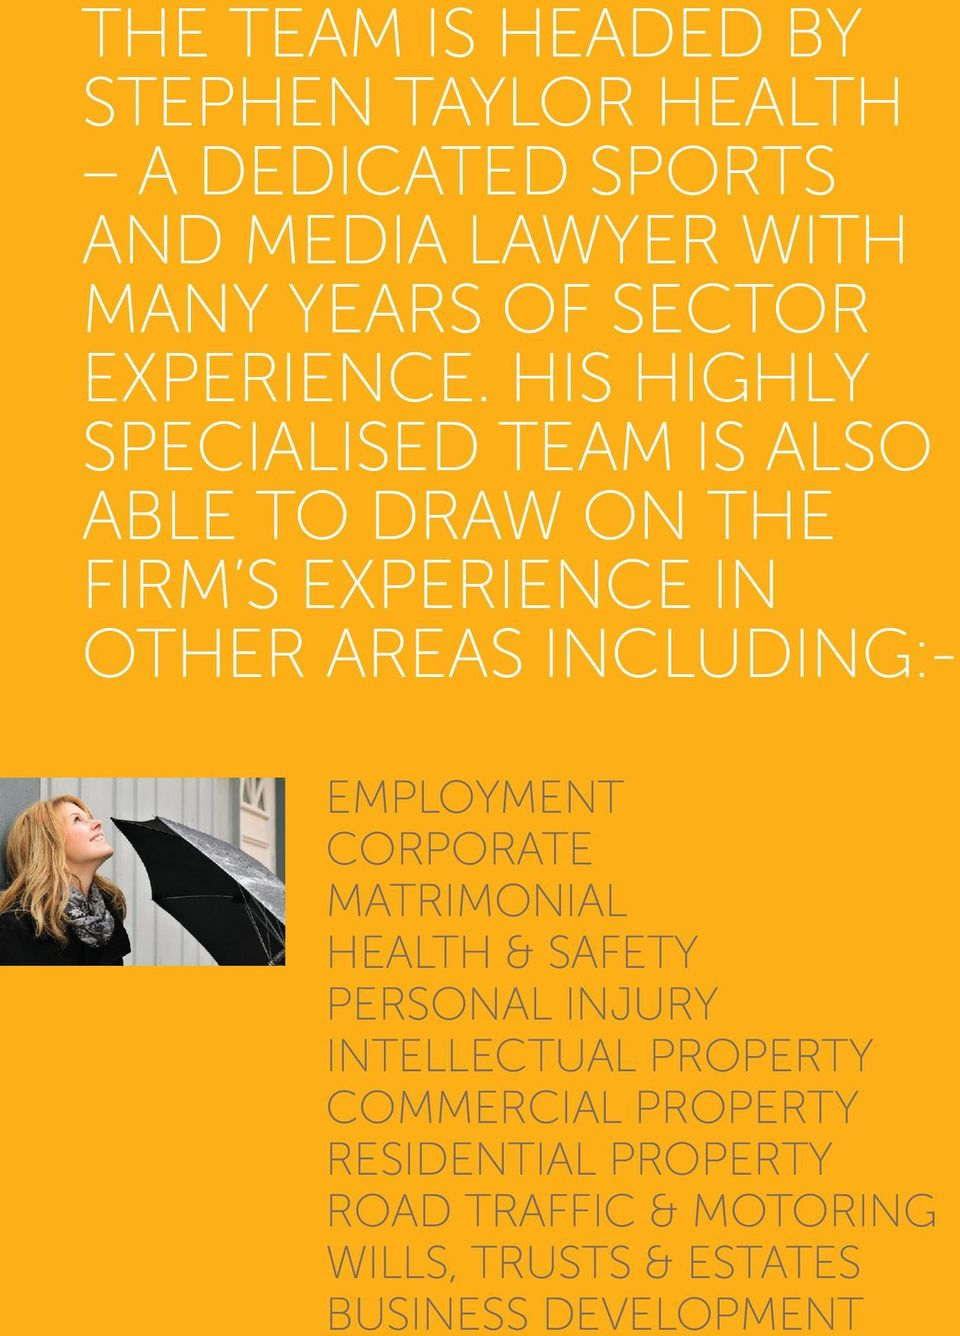 HIS HIGHLY SPECIALISED TEAM IS ALSO ABLE TO DRAW ON THE FIRM S EXPERIENCE IN OTHER AREAS INCLUDING:-